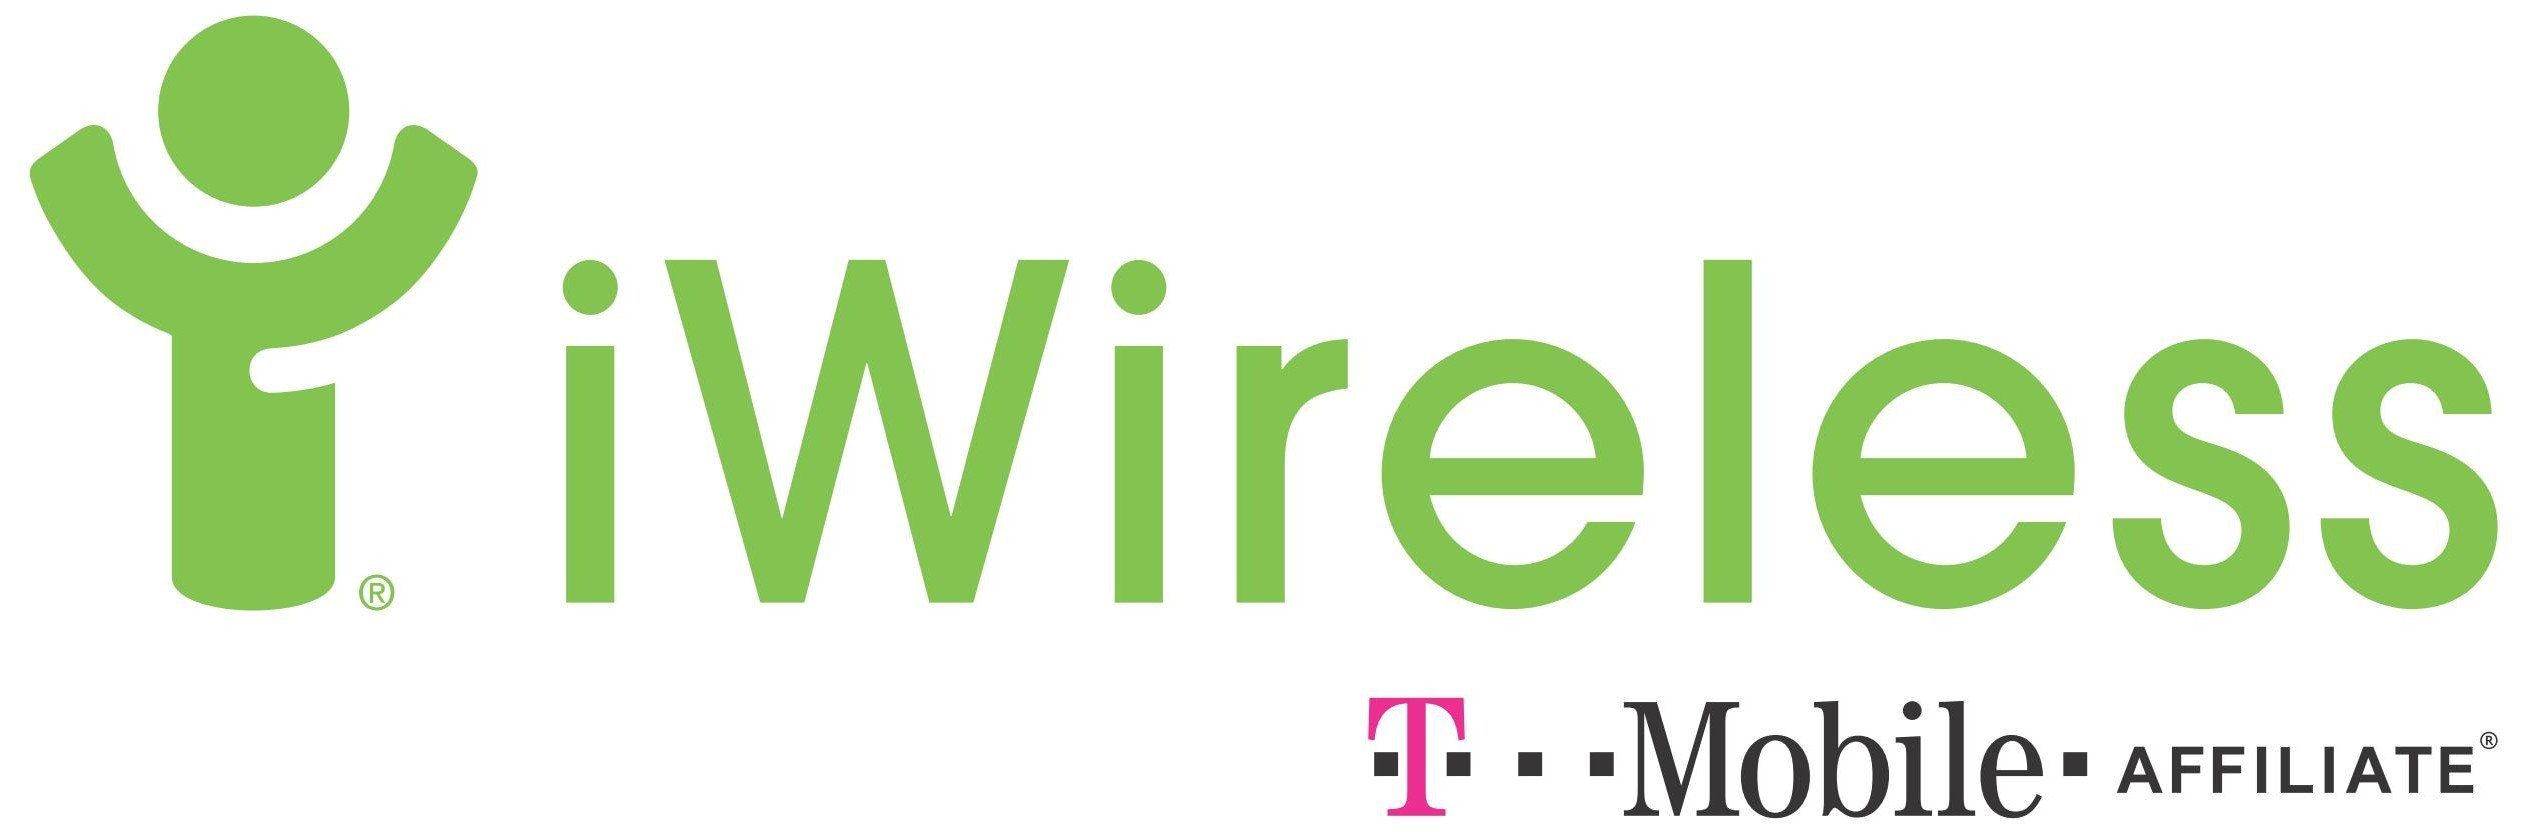 i wireless logo [EPS File] png